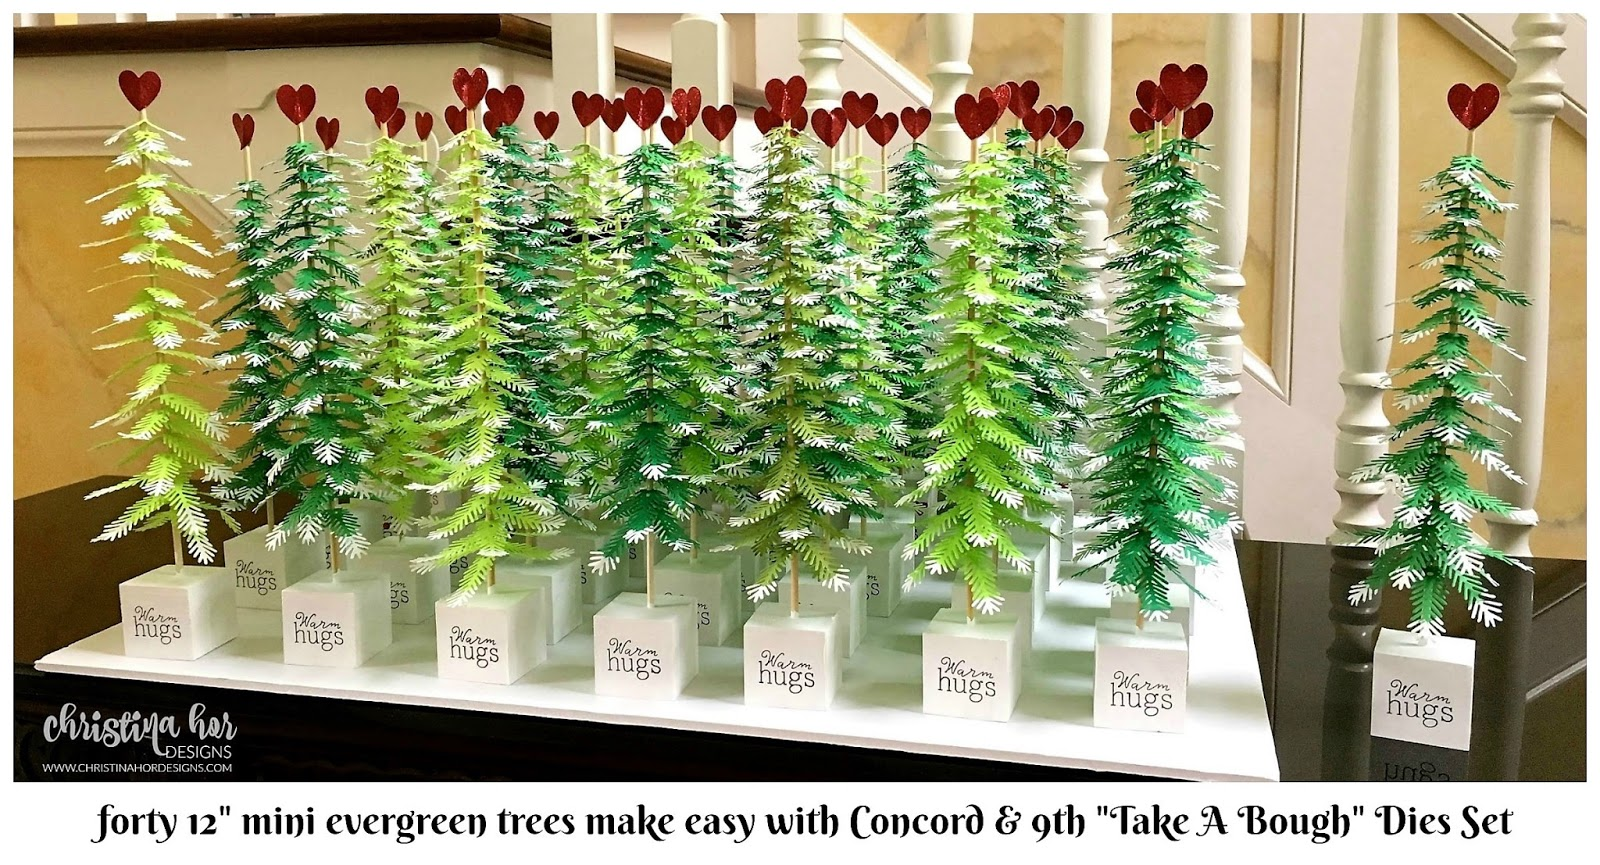 concord & 9th Take A Bough Dies Set mini evergreen tree craft